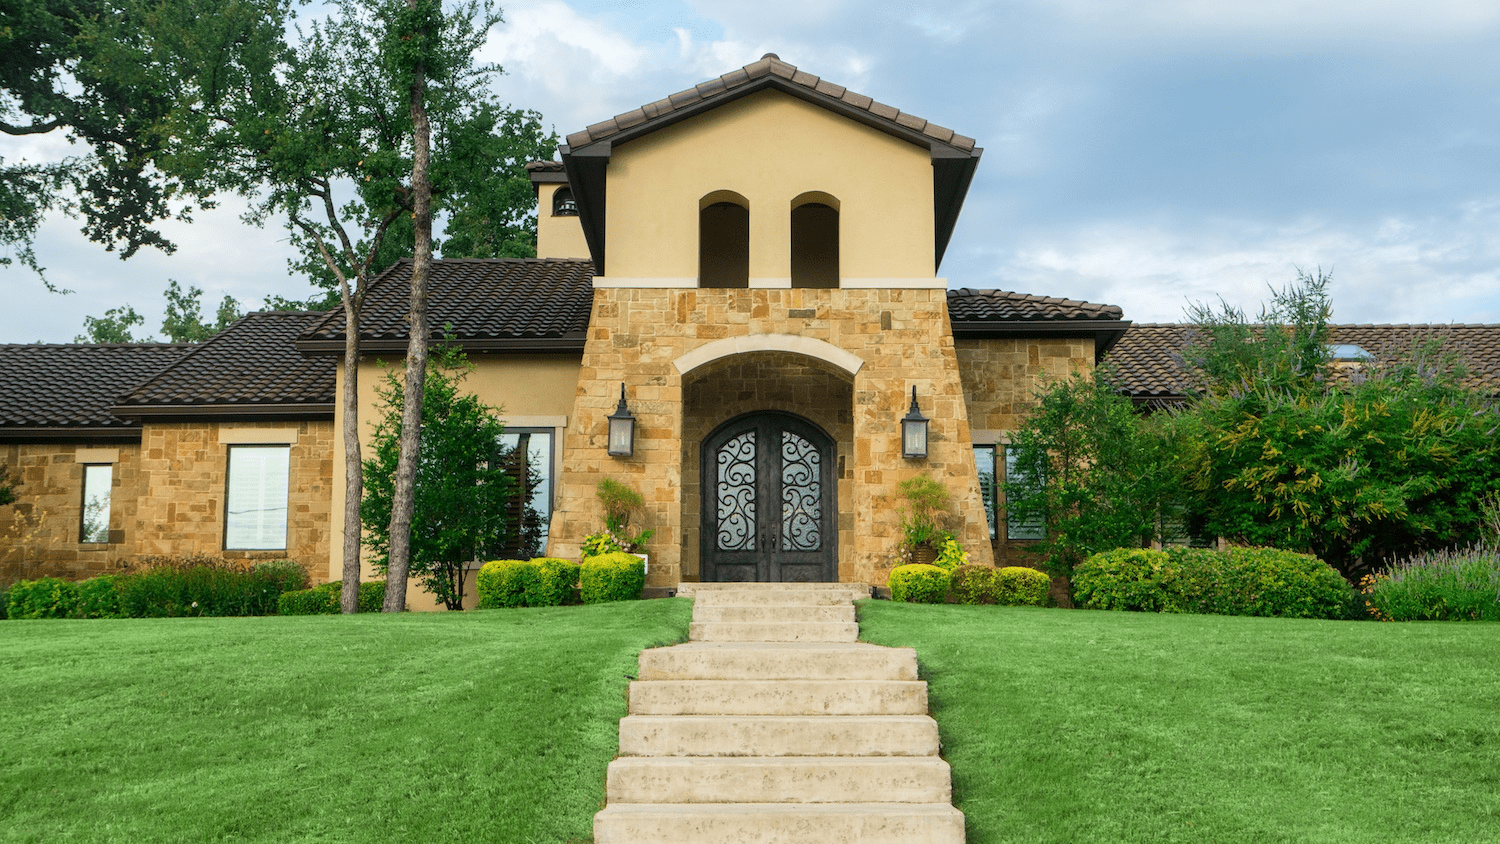 house-lawn-stairs-walkway-shrubs-bushes-trees